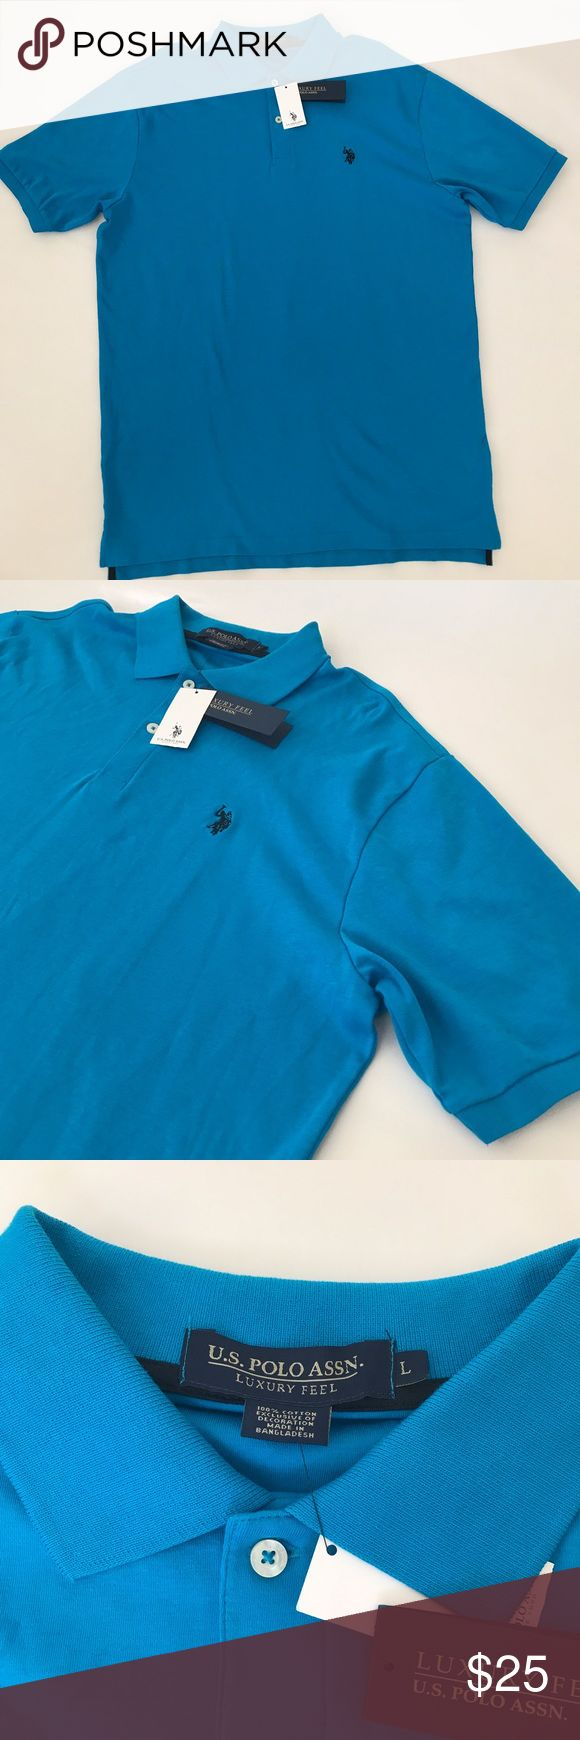 Men's Polo Shirt Look fresh and be comfortable in this nice breathable cotton. 100% Cotton. Please note that the XL is NOT nwt but is in still pristine condition. U.S. Polo Assn. Shirts Polos